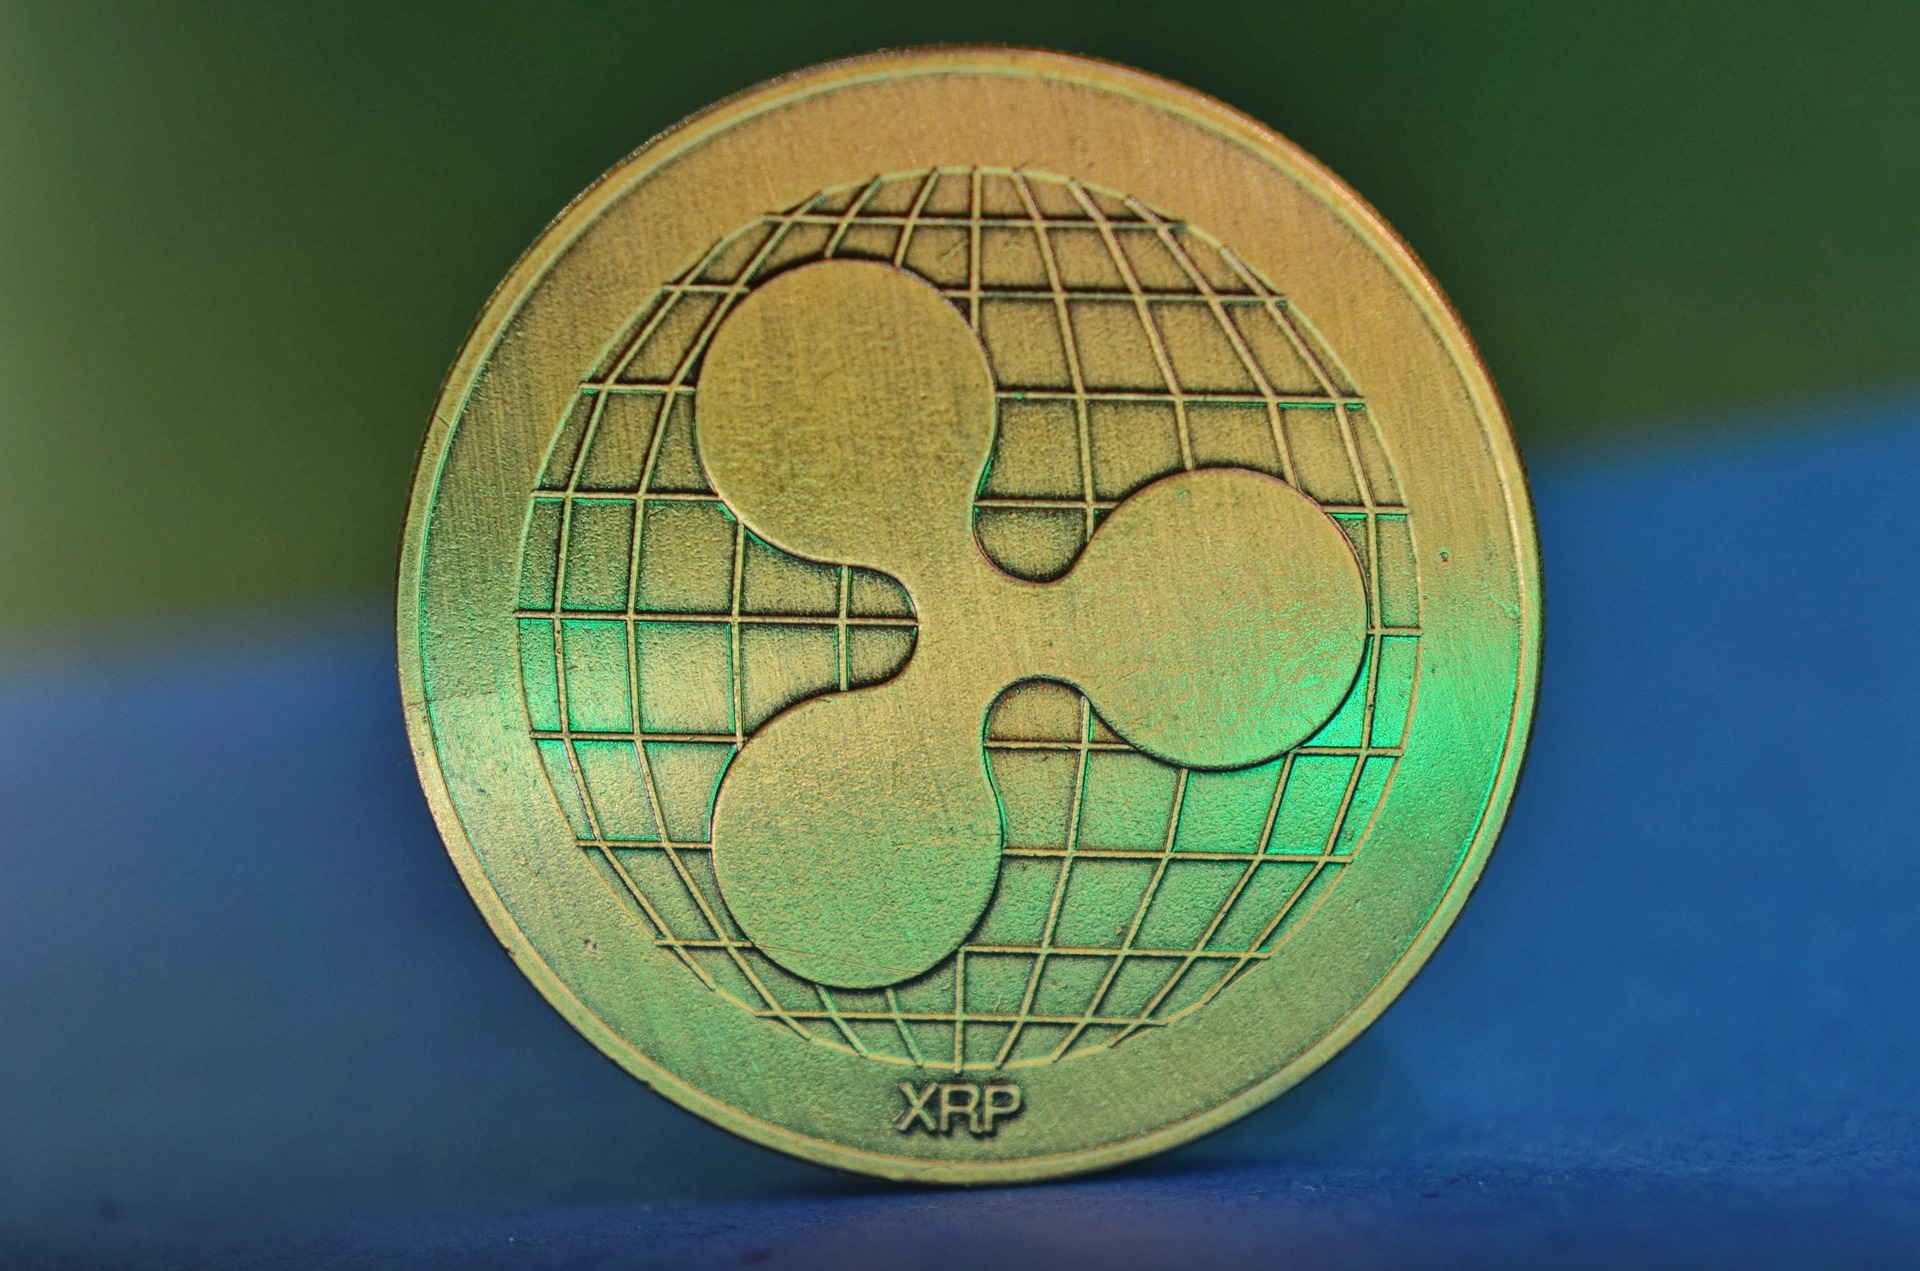 Binance US, Bittrex, And eToro Announce To Discontinue XRP Trading